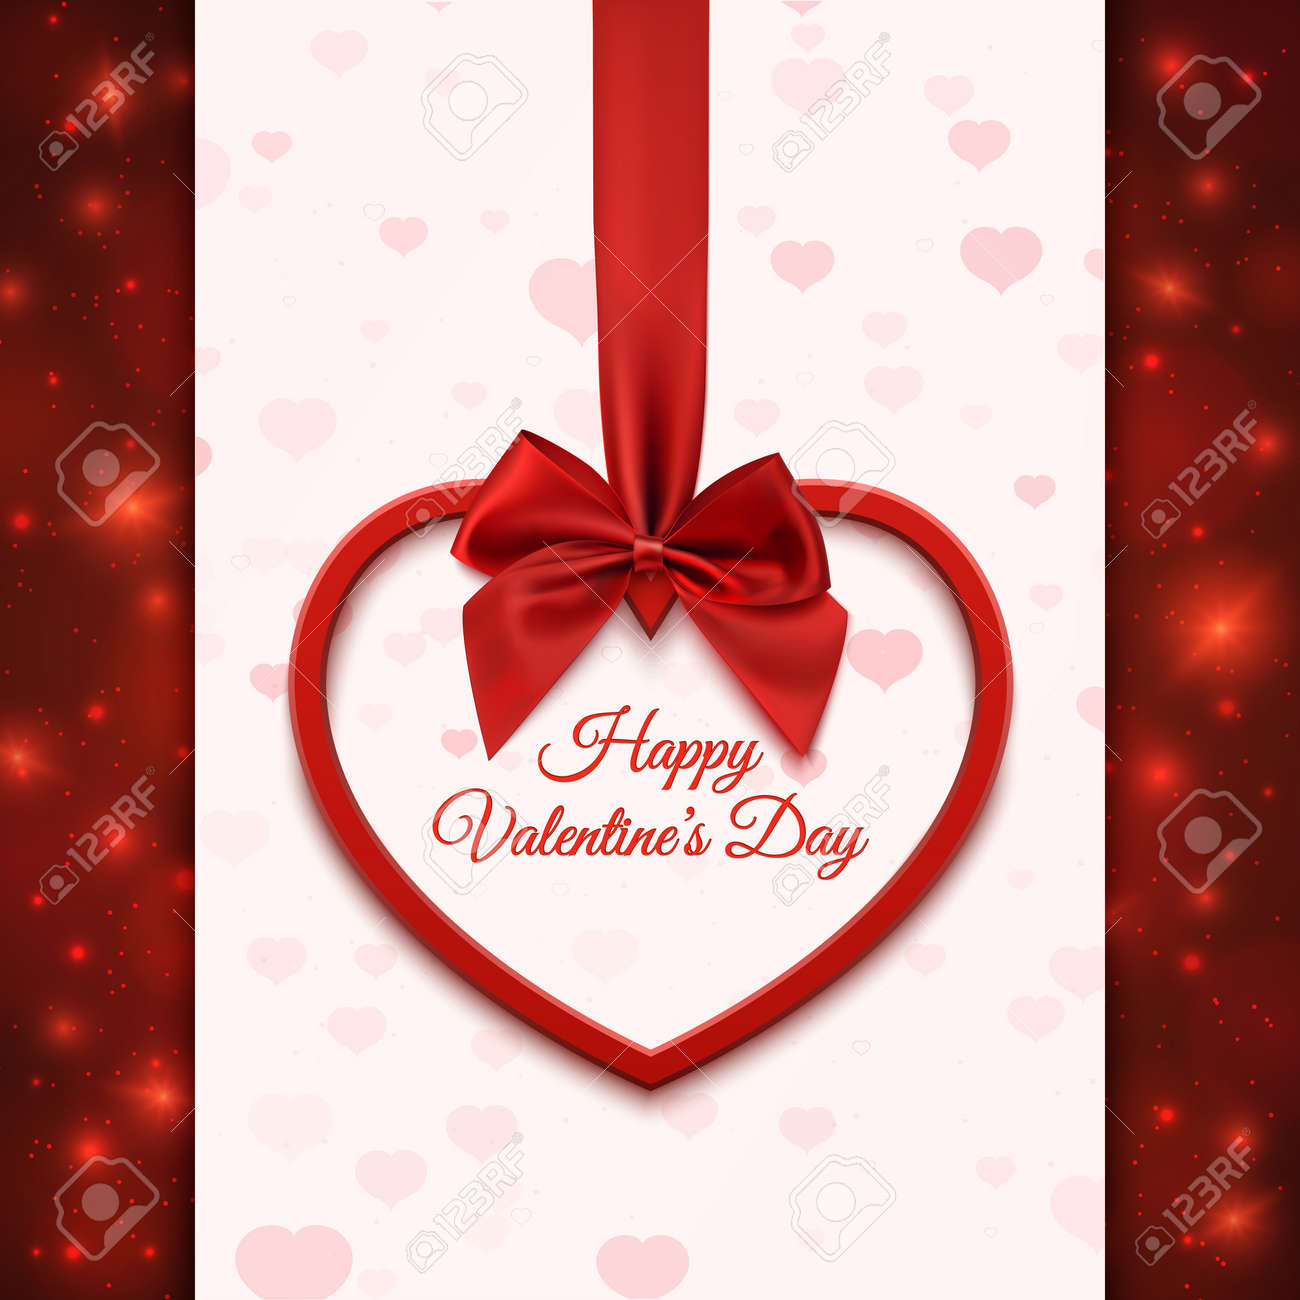 happy valentines day greeting card template red heart with red